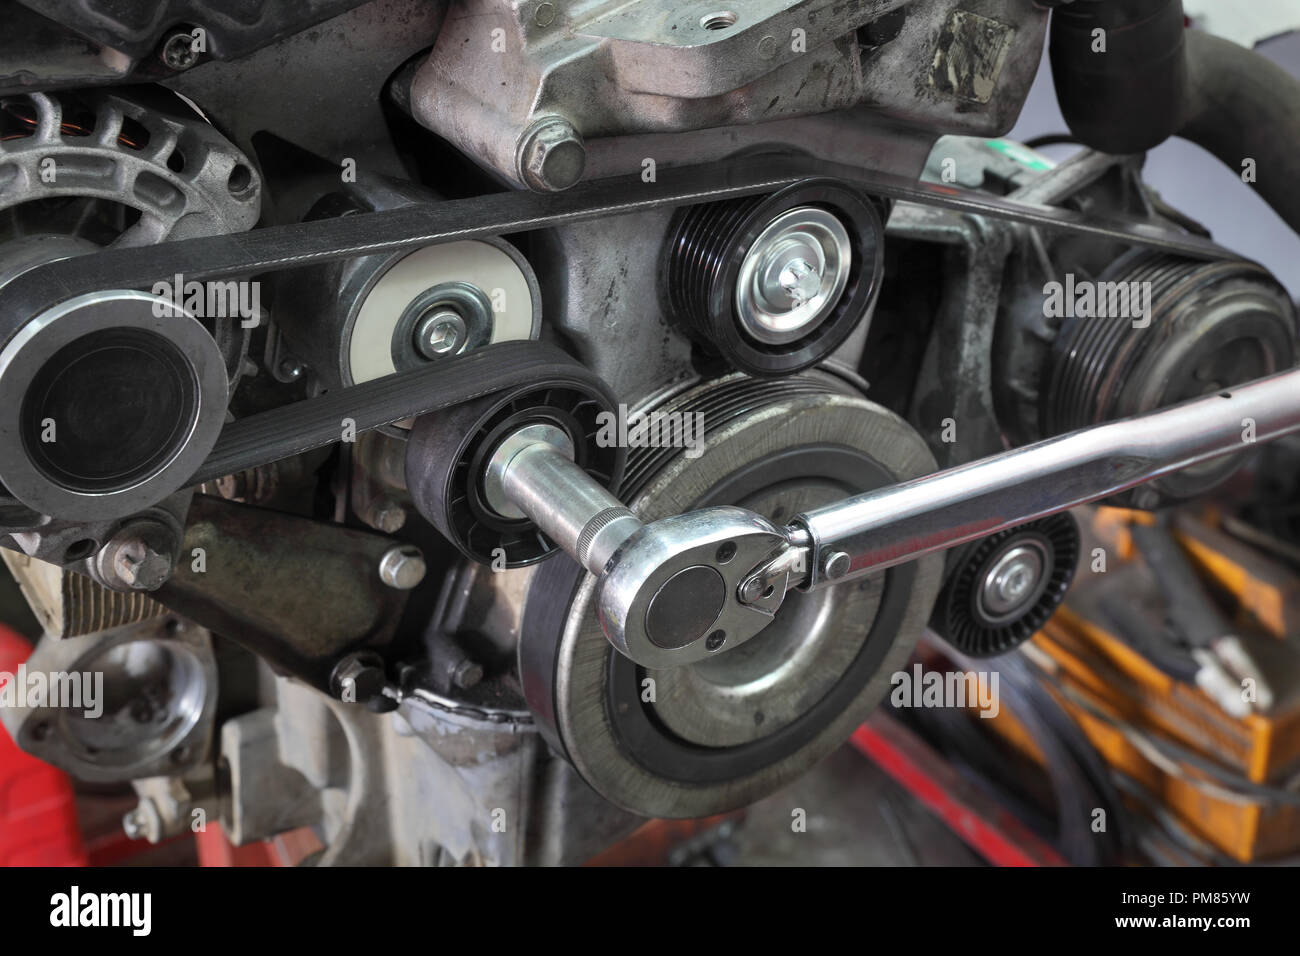 Pk belt, pulleys and alternator at modern car engine after servicing with ratchet tool - Stock Image